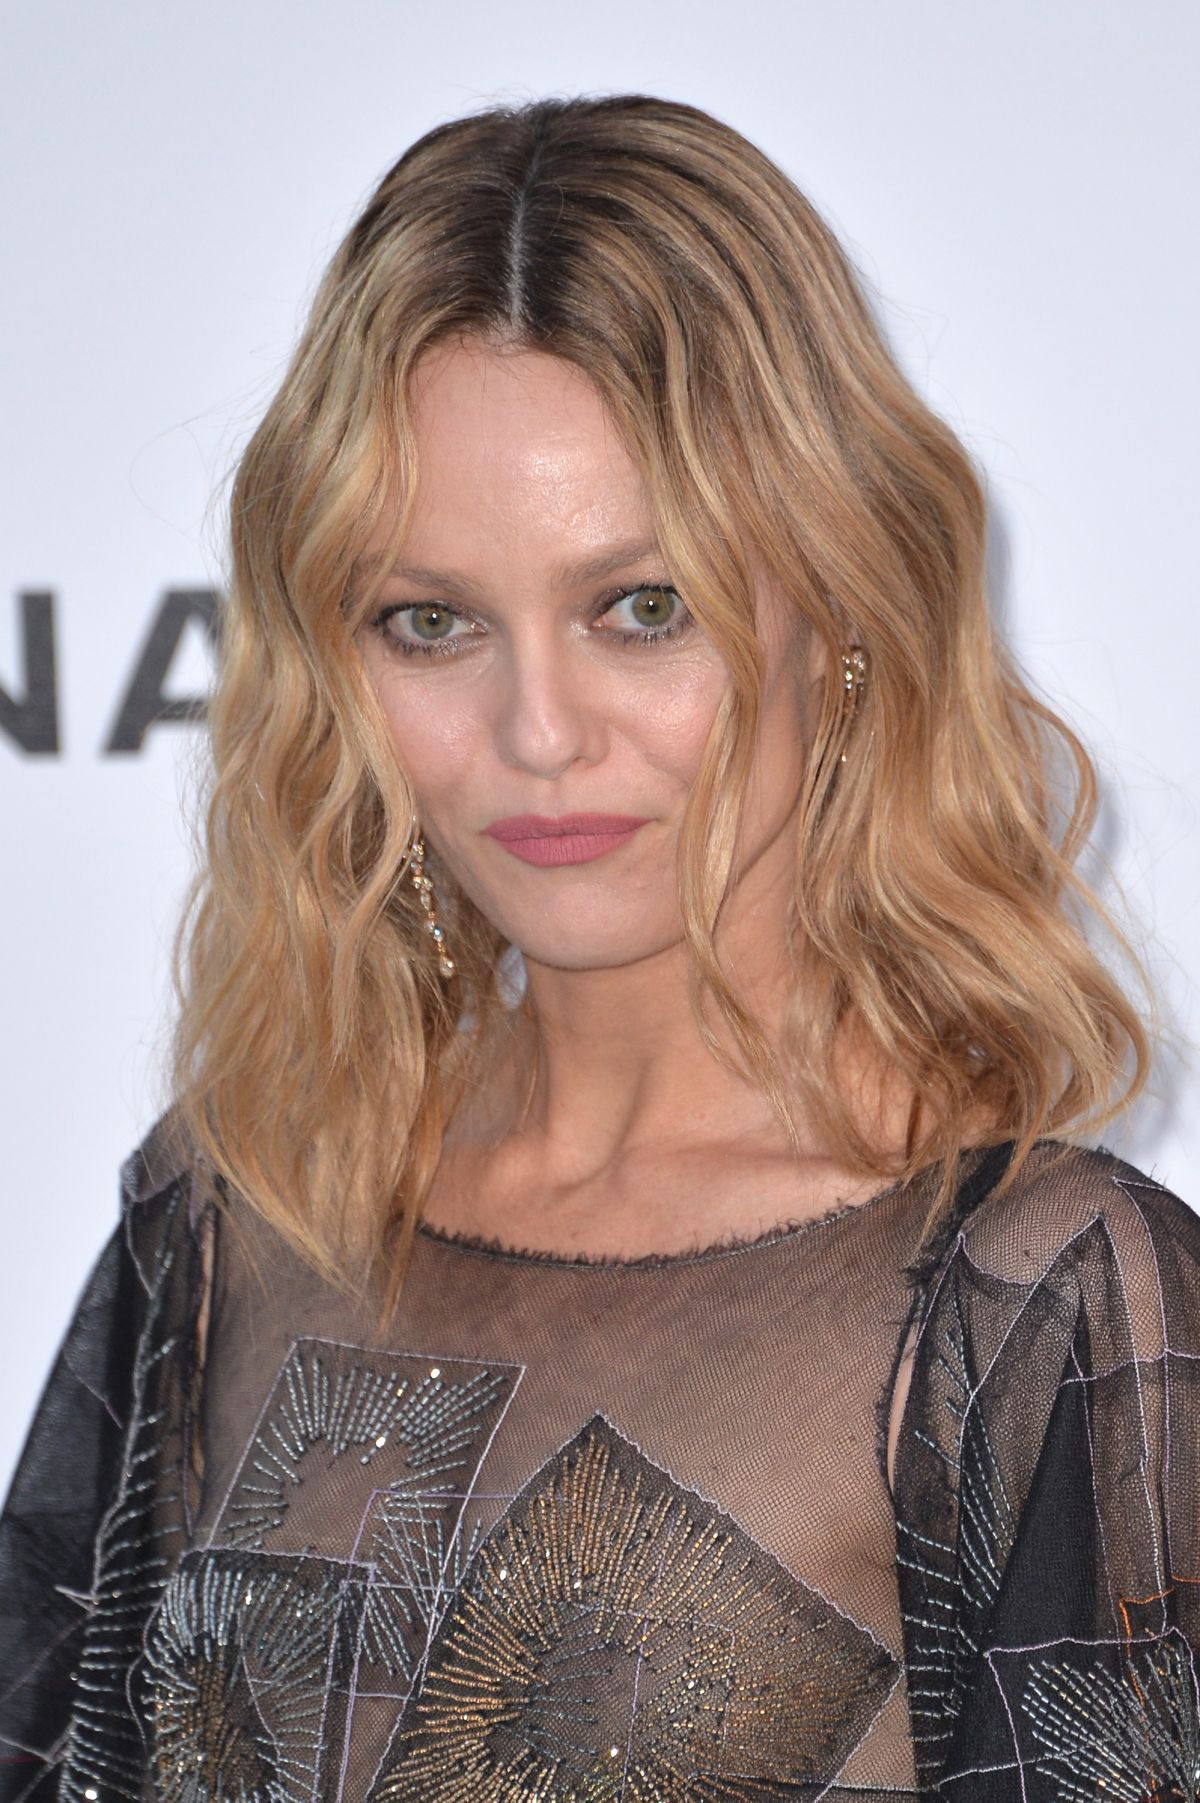 VANESSA PARADIS at Amfar's 23rd Cinema Against Aids Gala ... Vanessa Paradis